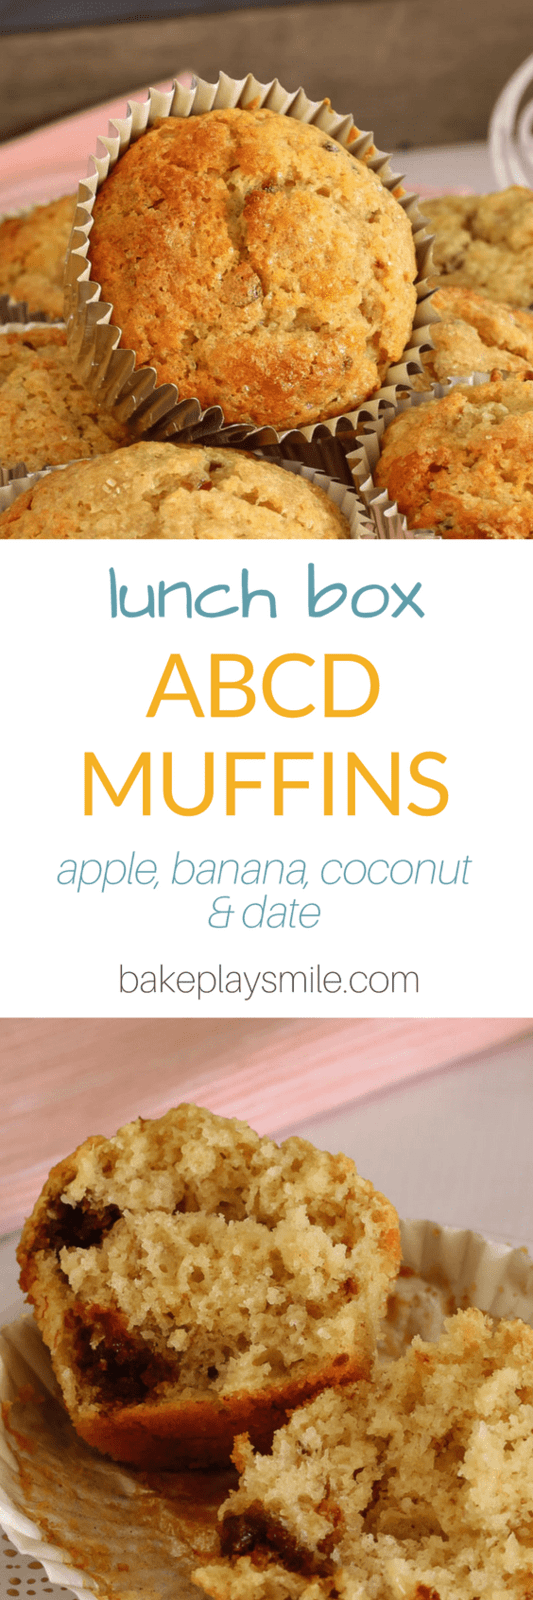 ABCD Muffins... so healthy and so easy! These muffins are packed with apple, banana, coconut and dates which makes them super moist and extra tasty!